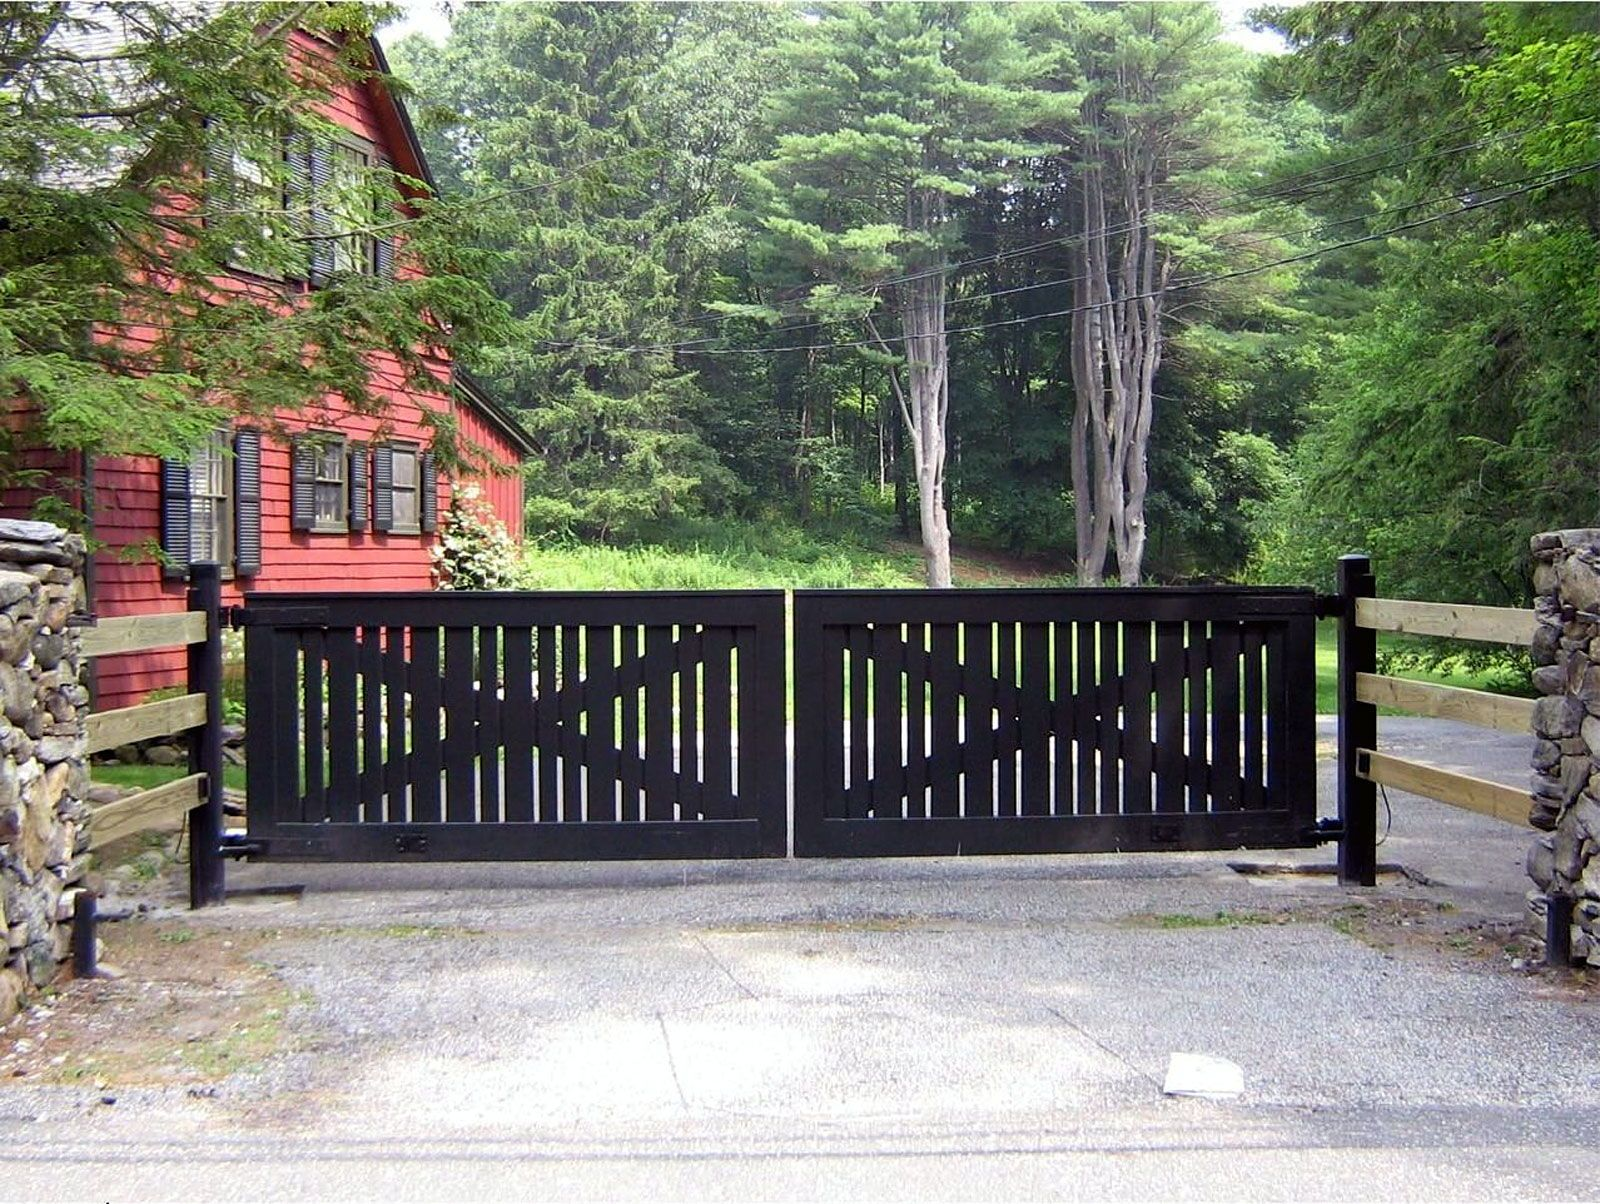 An Eye Catching Farmhouse Meets Modern Look On A Black Painted Wooden Driveway Gate The Wooden Pickets Wooden Gates Driveway House Gate Design Driveway Gate